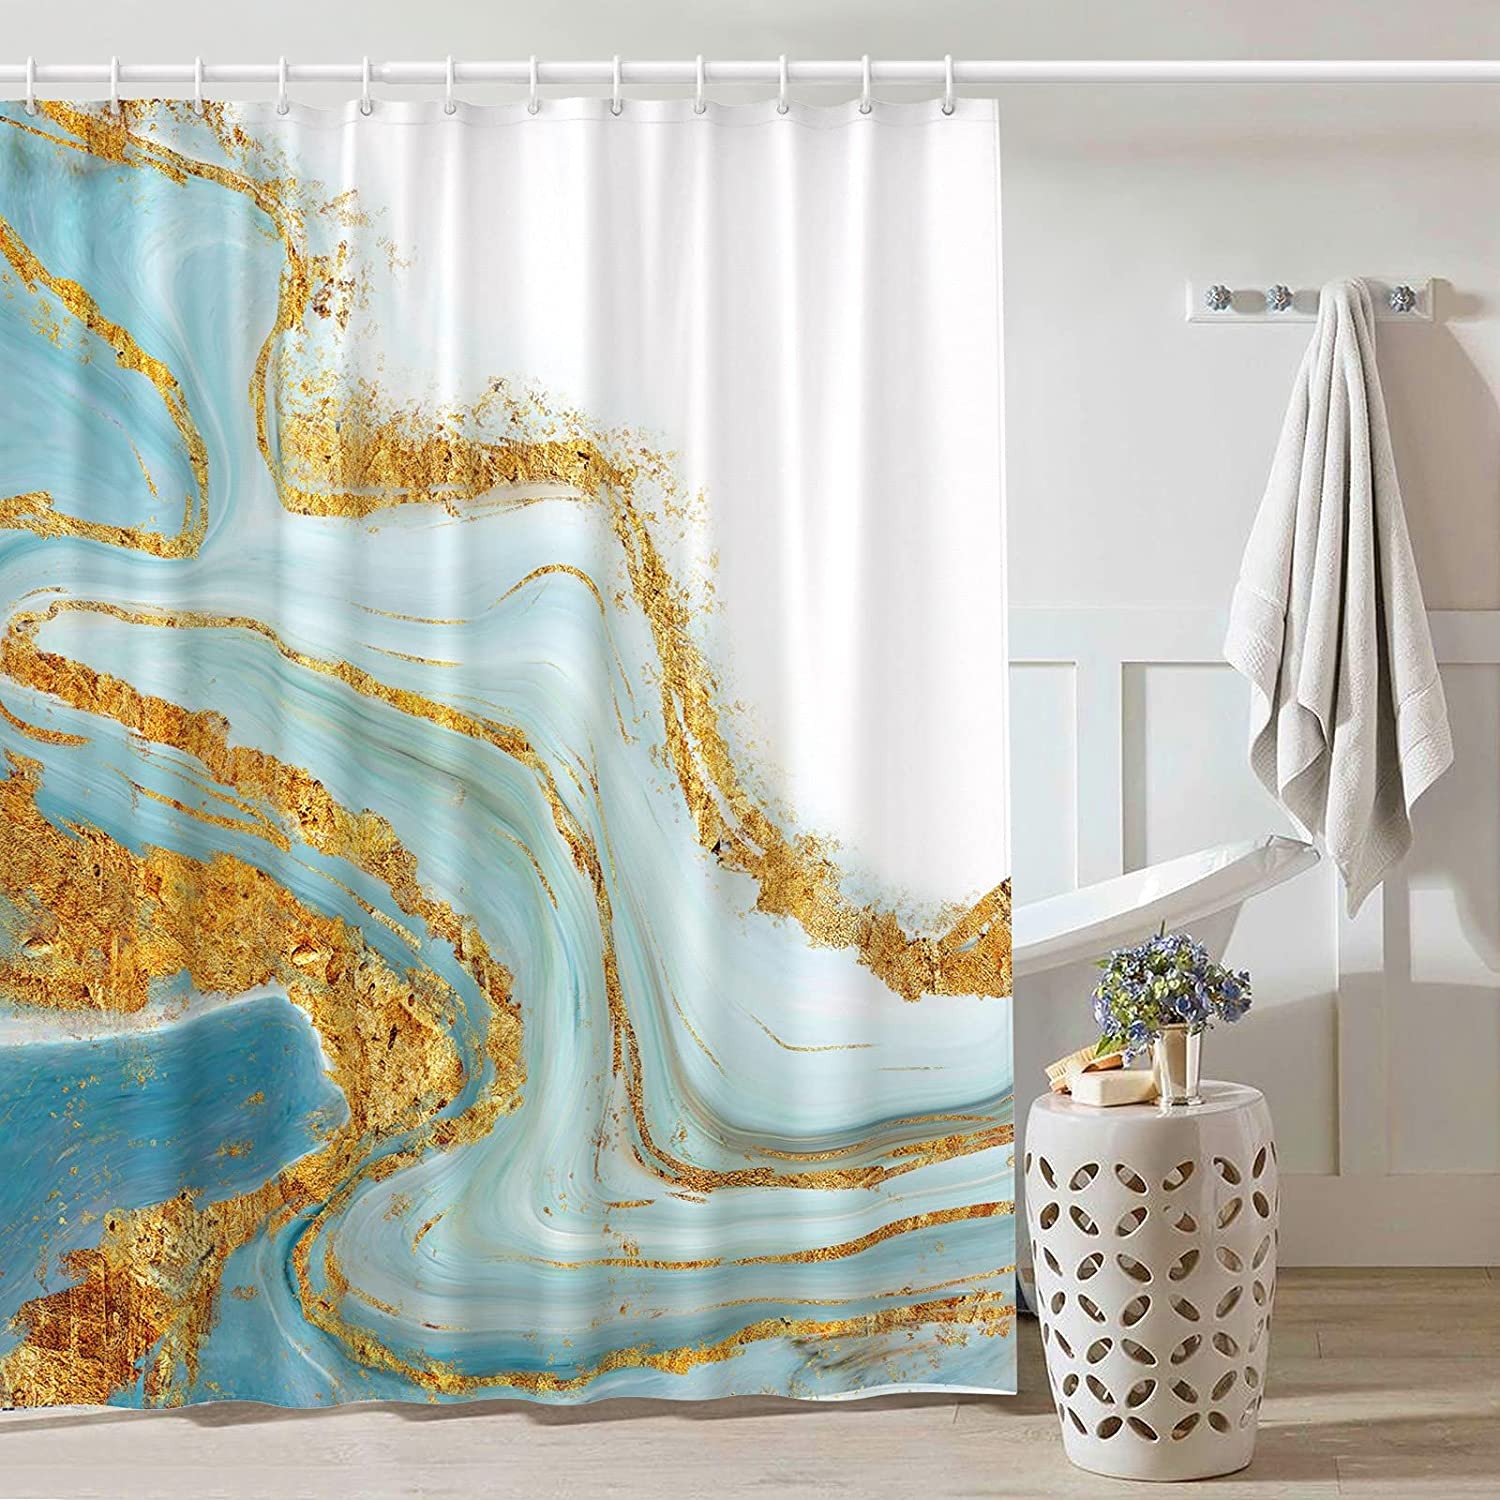 BTTN Marble Shower Curtain Fabric Teal Blue - Abstract Shower Curtains for Bathroom Decor with Gold Ink Texture Pattern with 12 Hooks, 72x72 Waterproof Heavy Weighted Bathtub Curtains